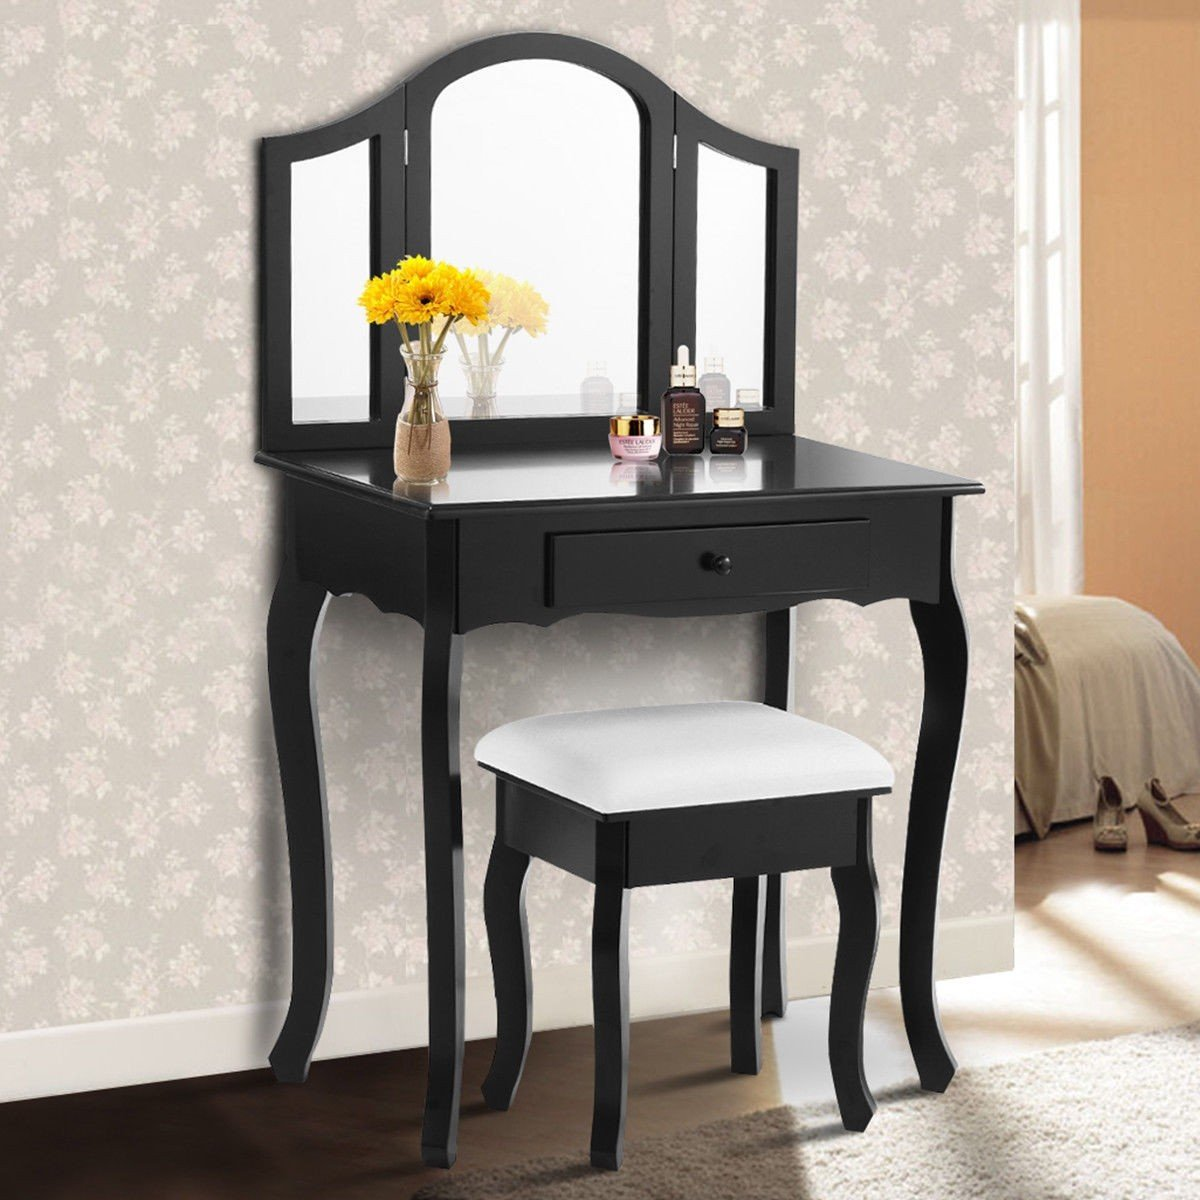 Black / White Vanity Makeup Dressing Table with Tri